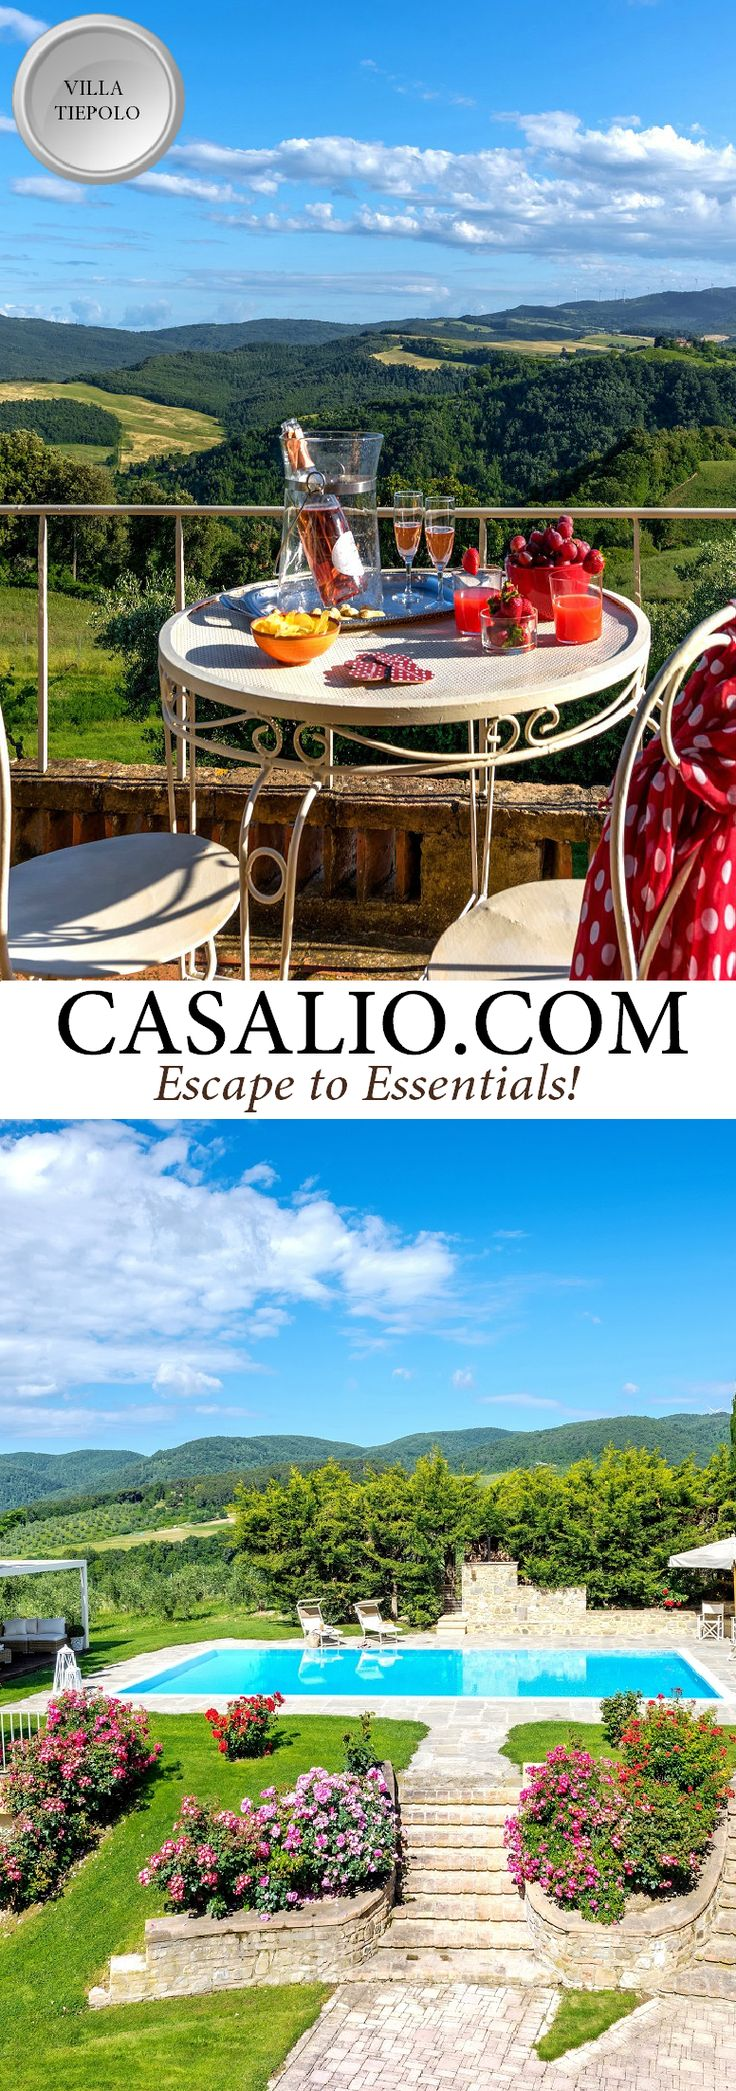 Villa Tiepolo || Italy - Tuscany - Pisa || 7 bedrooms, pool. A magnificent villa overlooking the greenery and beautiful hills of the Chianti. #luxurytravel #travel #luxuryvillas #tuscanyvillas #tuscanvillas #pool #tuscany #pisa #travel #holiday #vacation (Pinned by #Casalio - www.casalio.com) Our travel blog www.casaliotravel.com